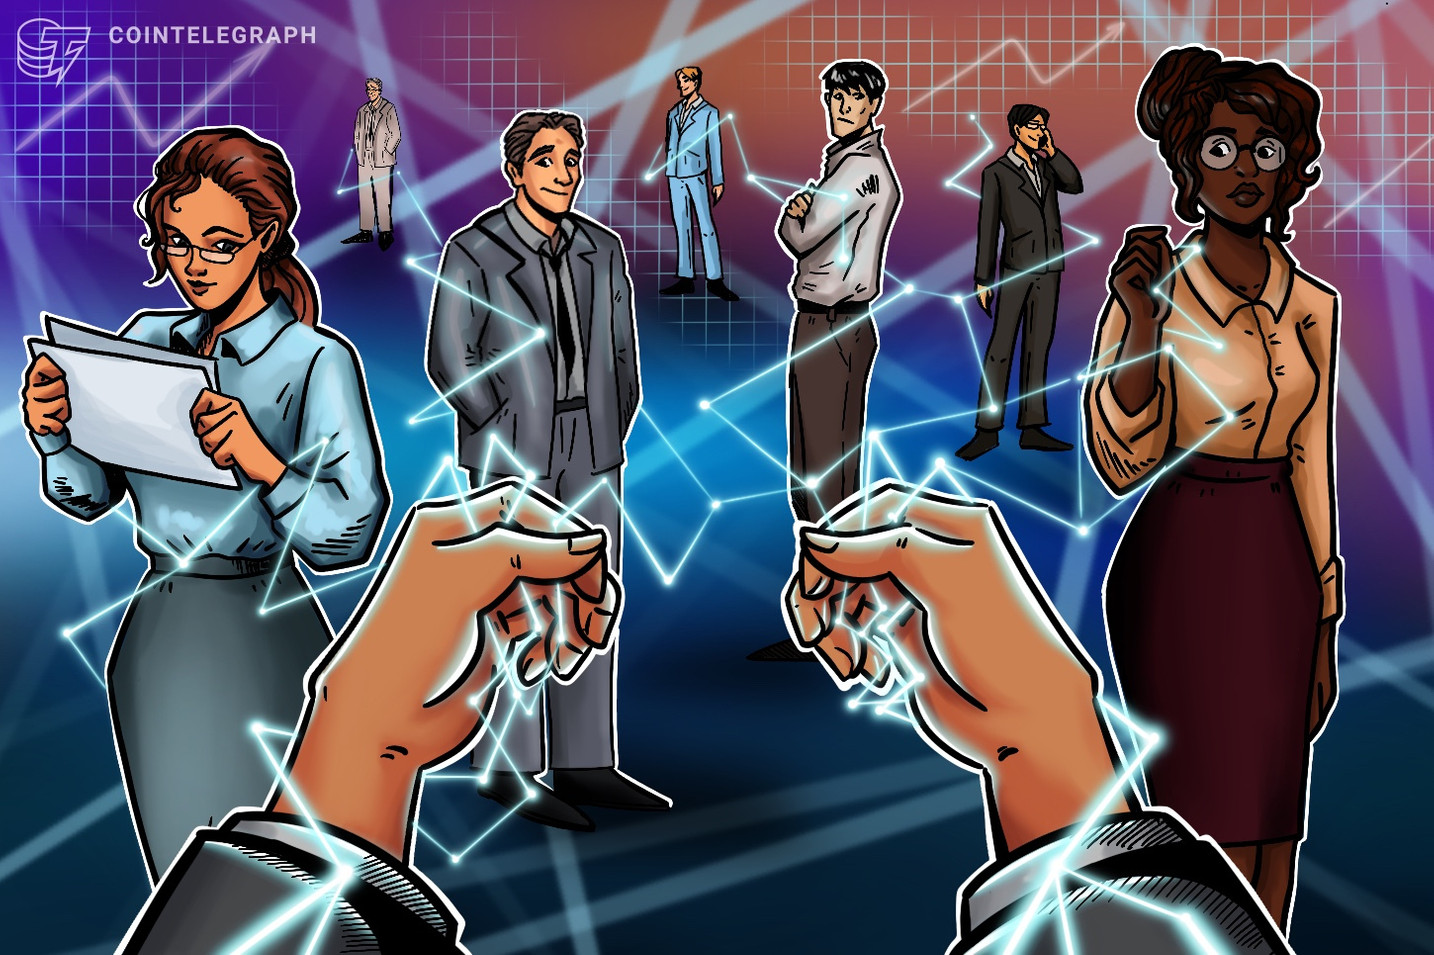 Cover Protocol announces compensation plan following mining contract attack